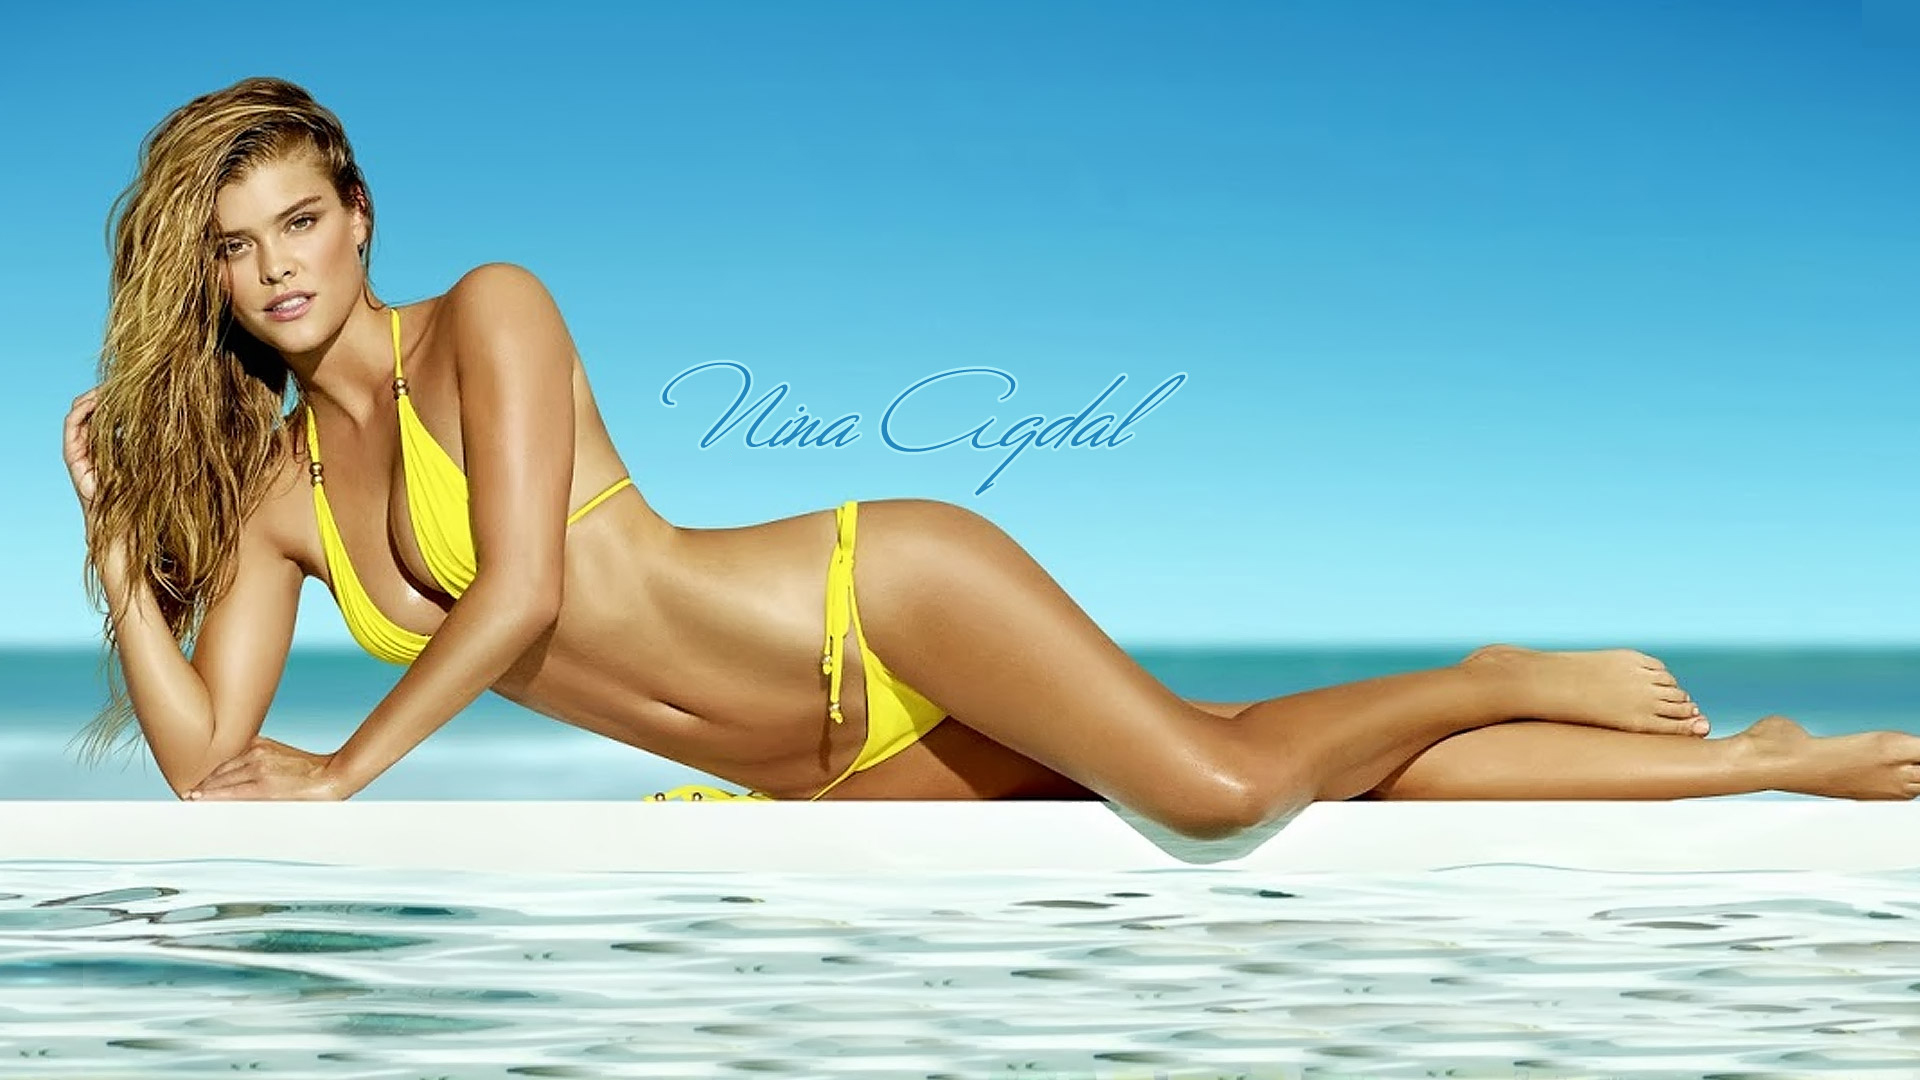 Nina Agdal Computer Backgrounds